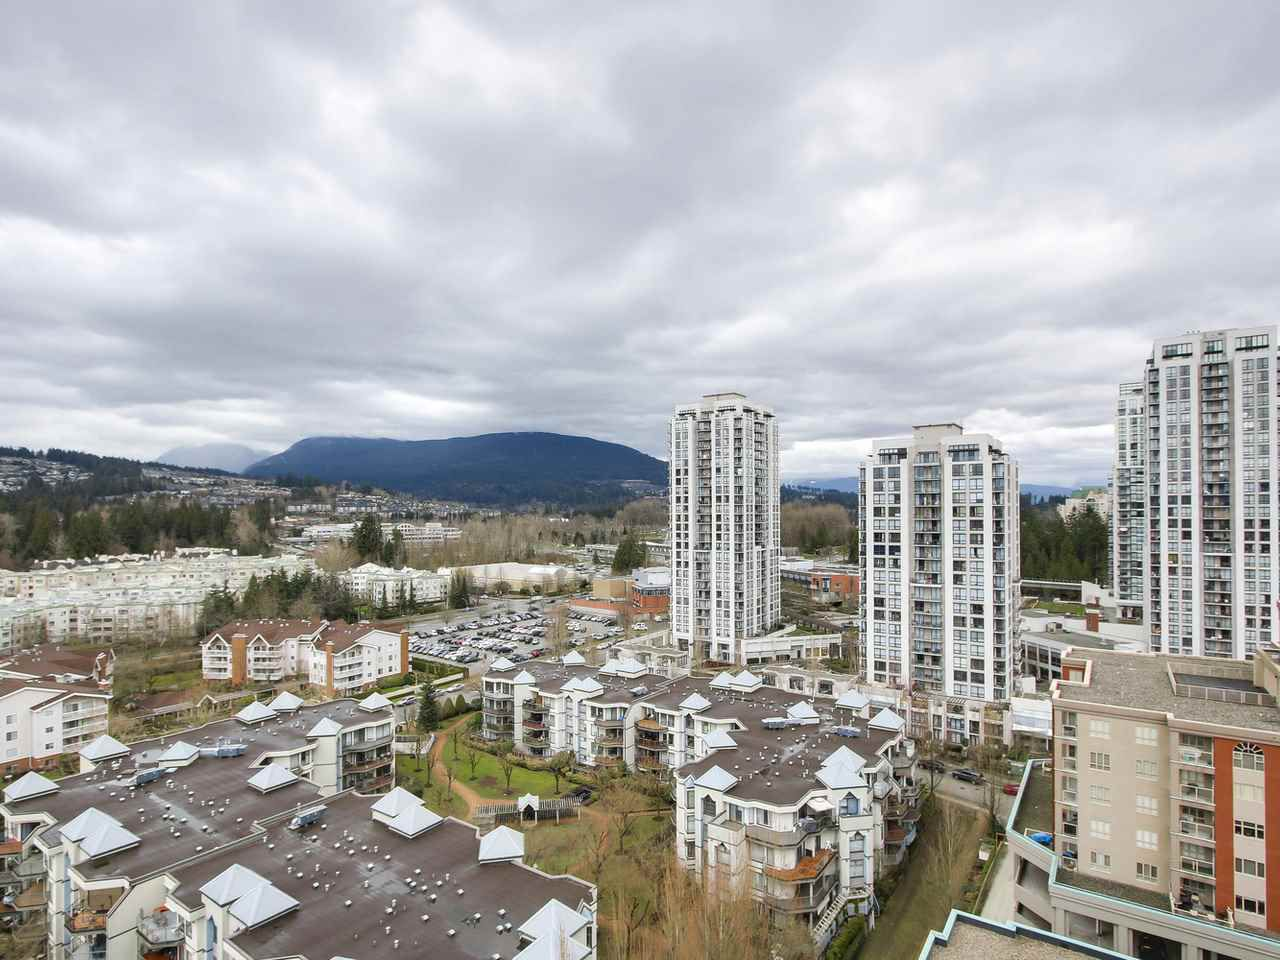 """Main Photo: 1901 2959 GLEN Drive in Coquitlam: North Coquitlam Condo for sale in """"THE PARC"""" : MLS®# R2149009"""